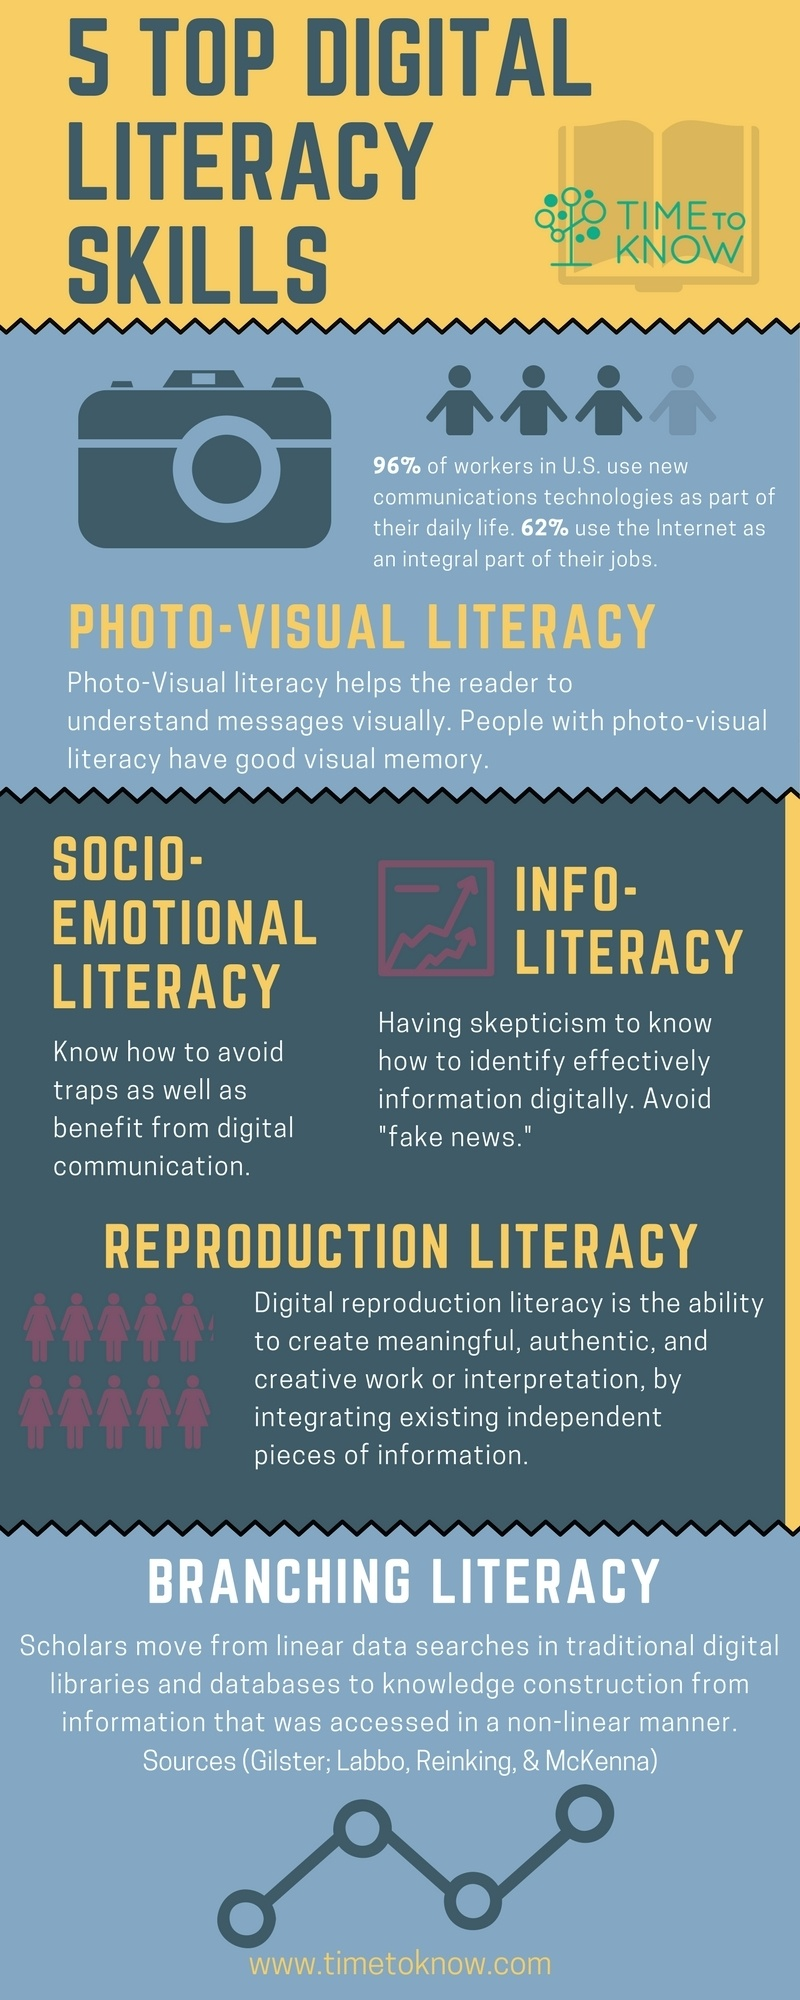 Essential Digital Literacy Skills for the 21st Century Worker Infographic